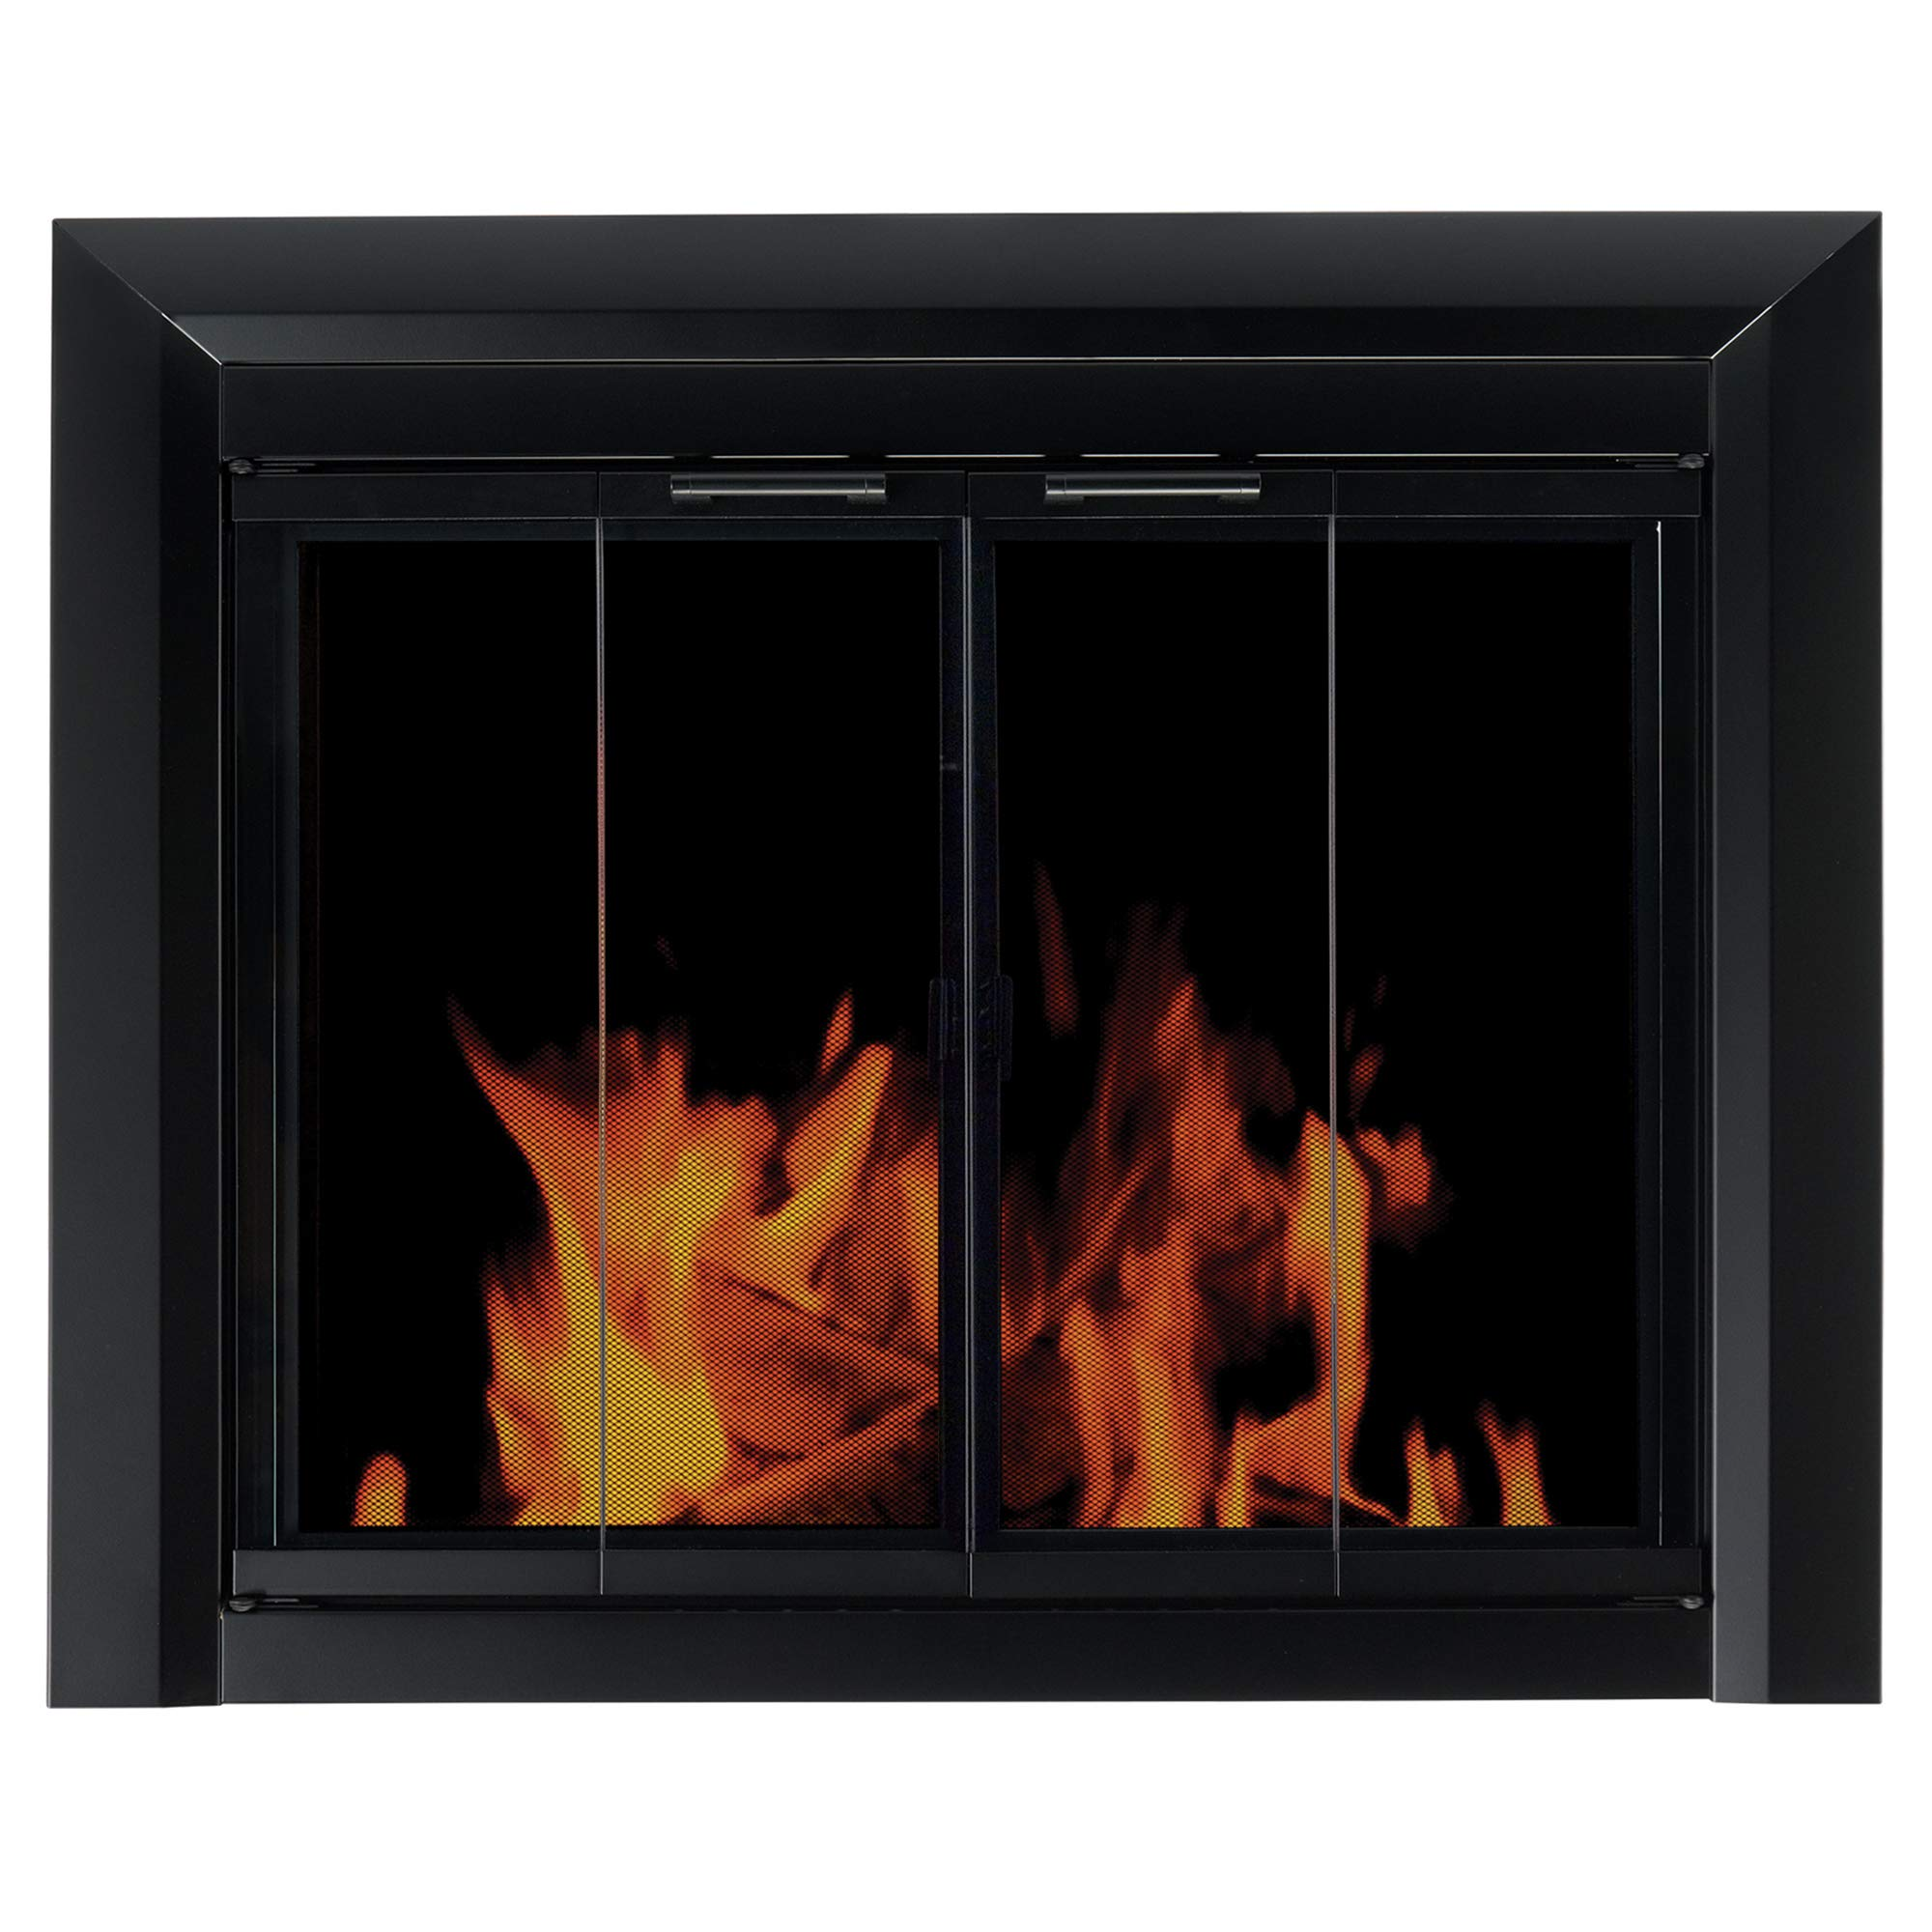 Pleasant Hearth Clairmont Black Fireplace Glass Firescreen Doors - Small product image